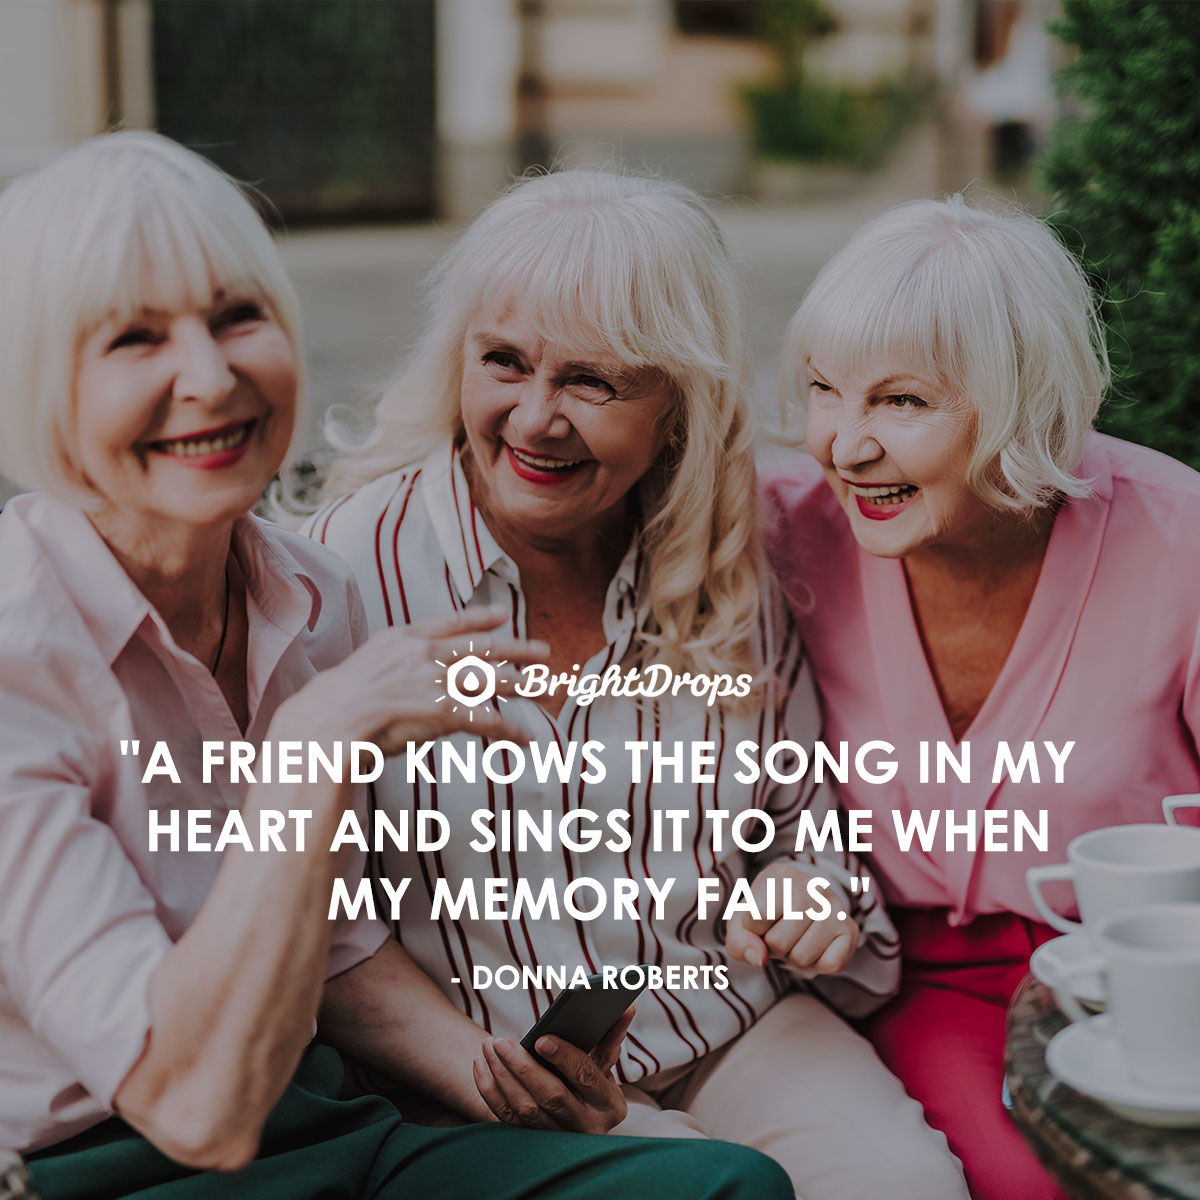 """A friend knows the song in my heart and sings it to me when my memory fails."" - Donna Roberts"